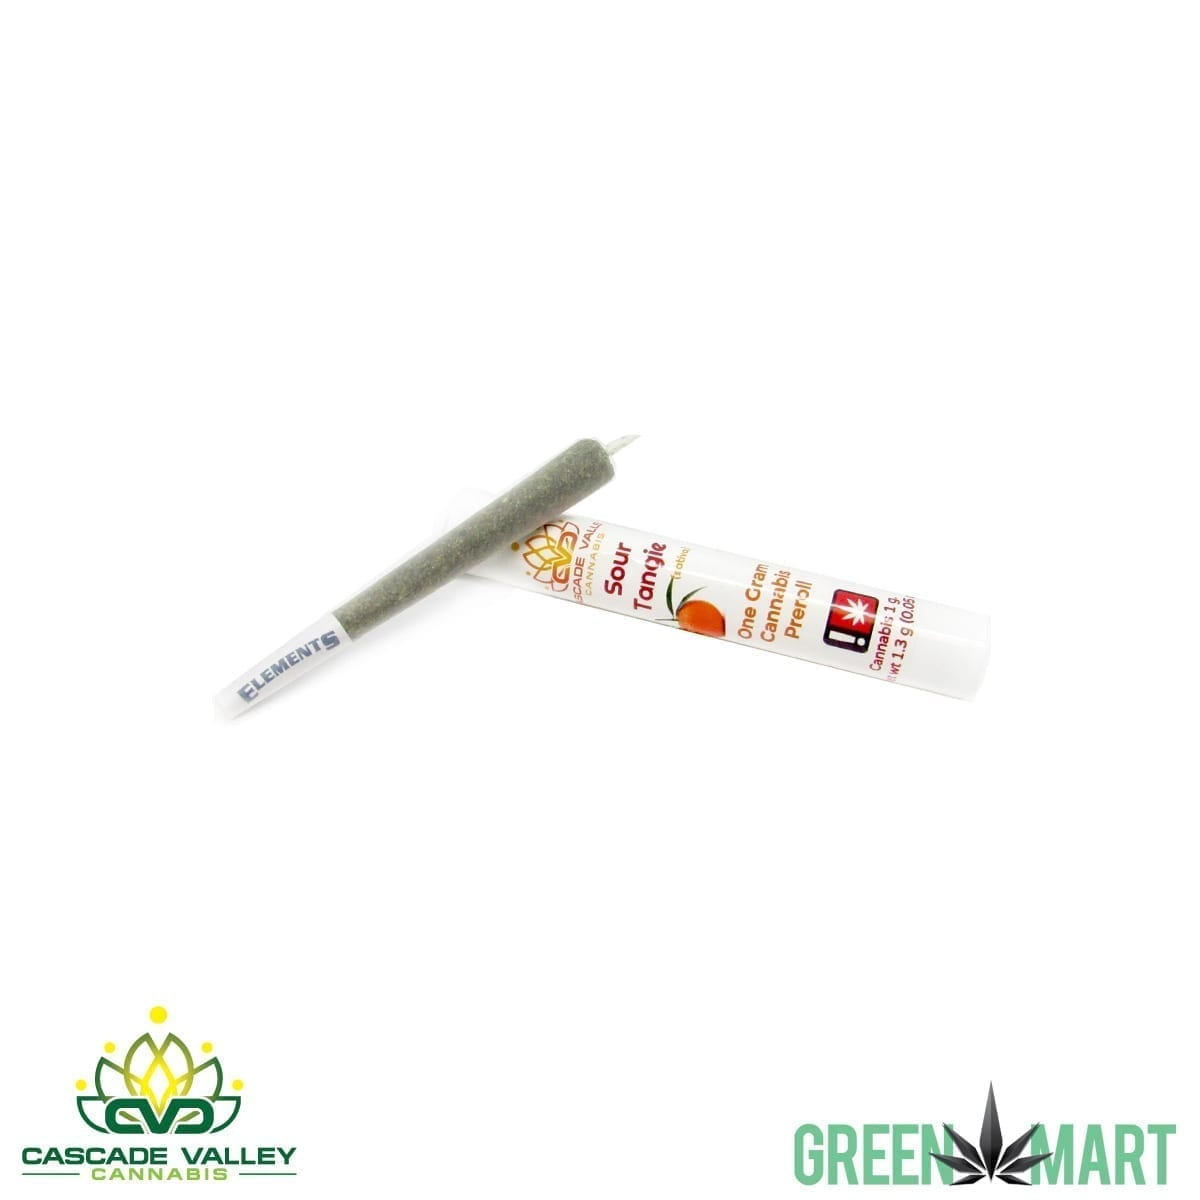 Cascade Valley Cannabis 1g Pre-roll - Sour Tangie